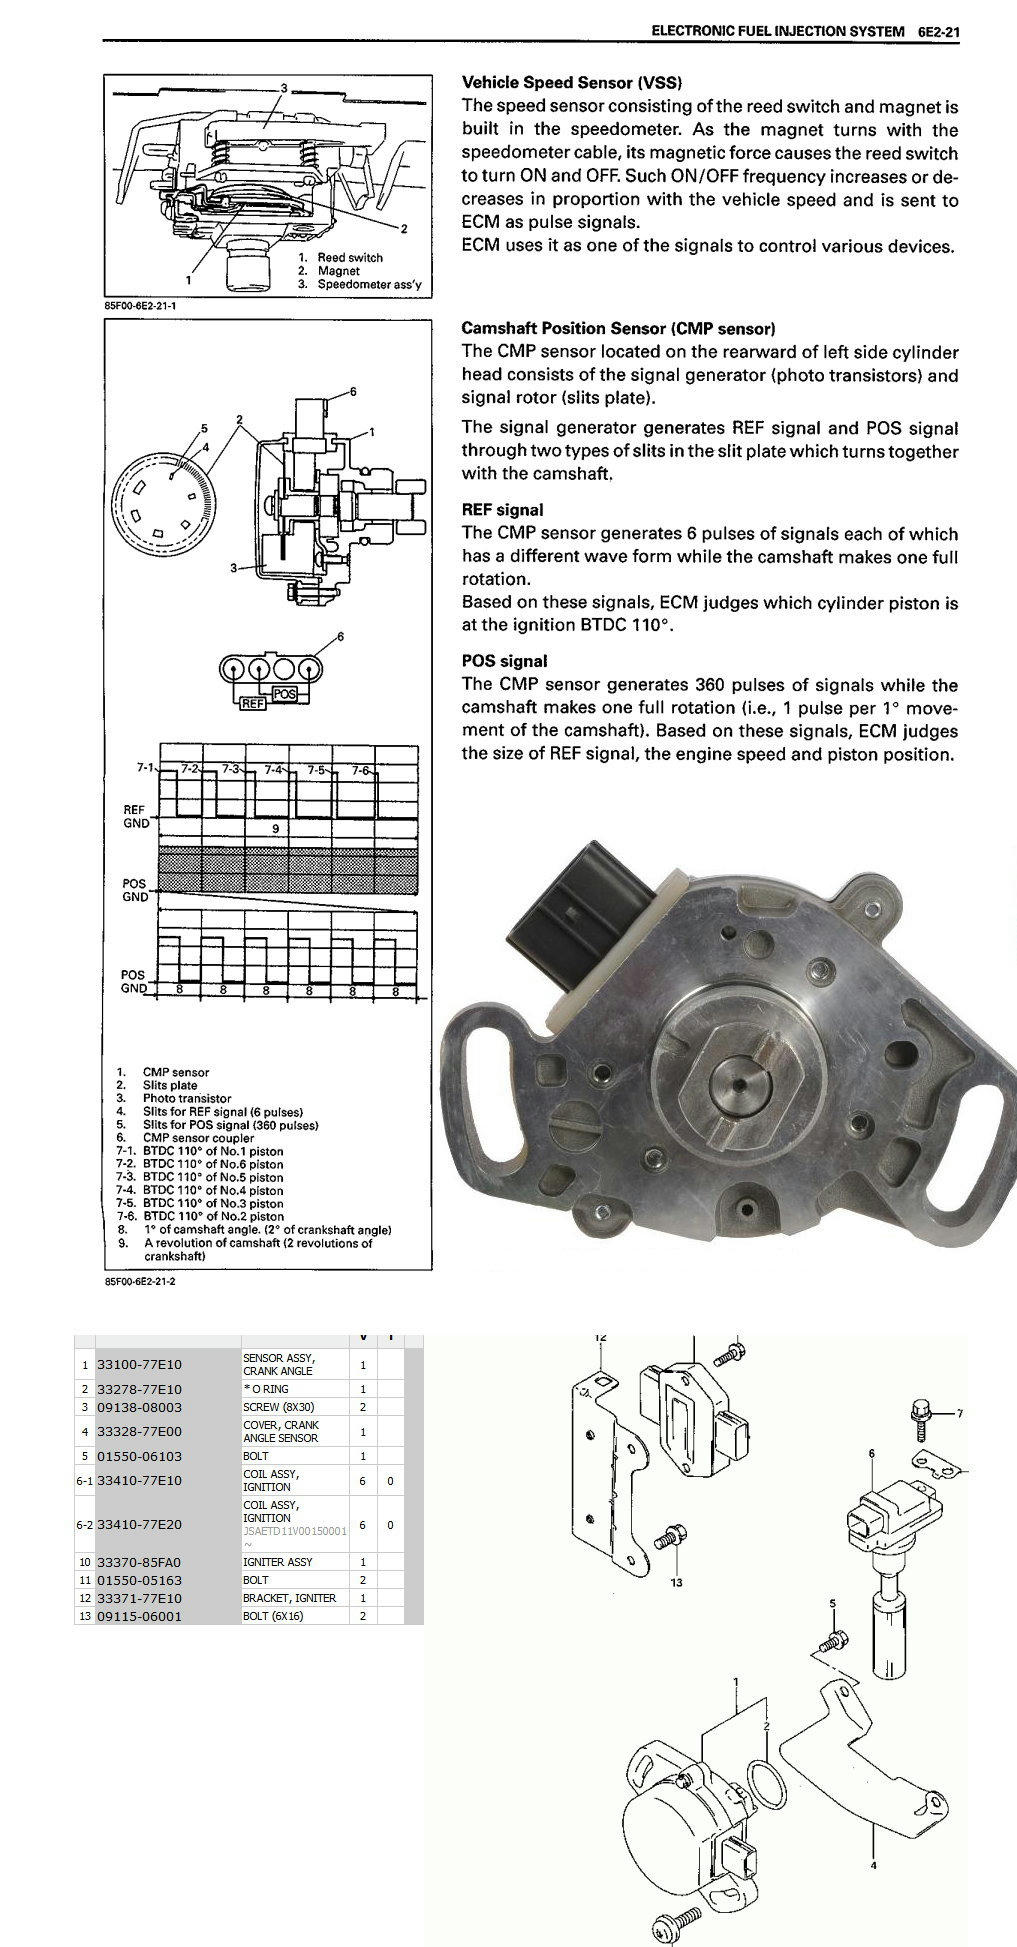 Where is the Crankshaft position sensor in a H20a engine